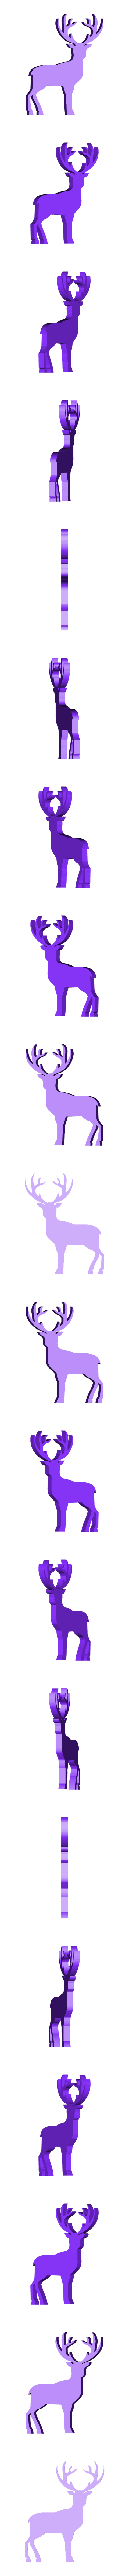 Reindeer_large_.stl Download free STL file Flat Reindeer • 3D printing object, christelle79